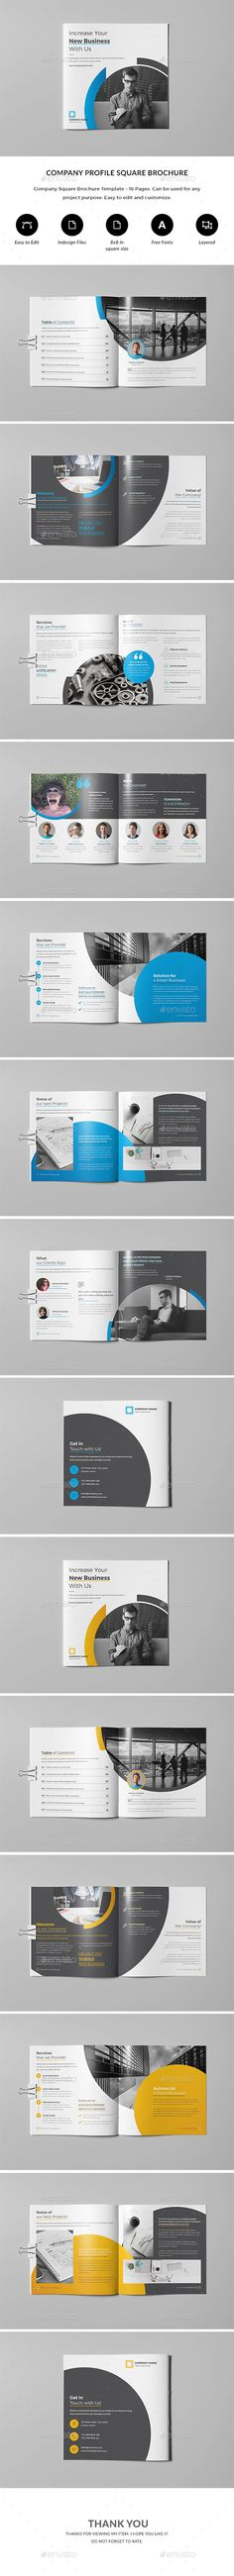 Company Business Profile Brochure Template InDesign INDD Company